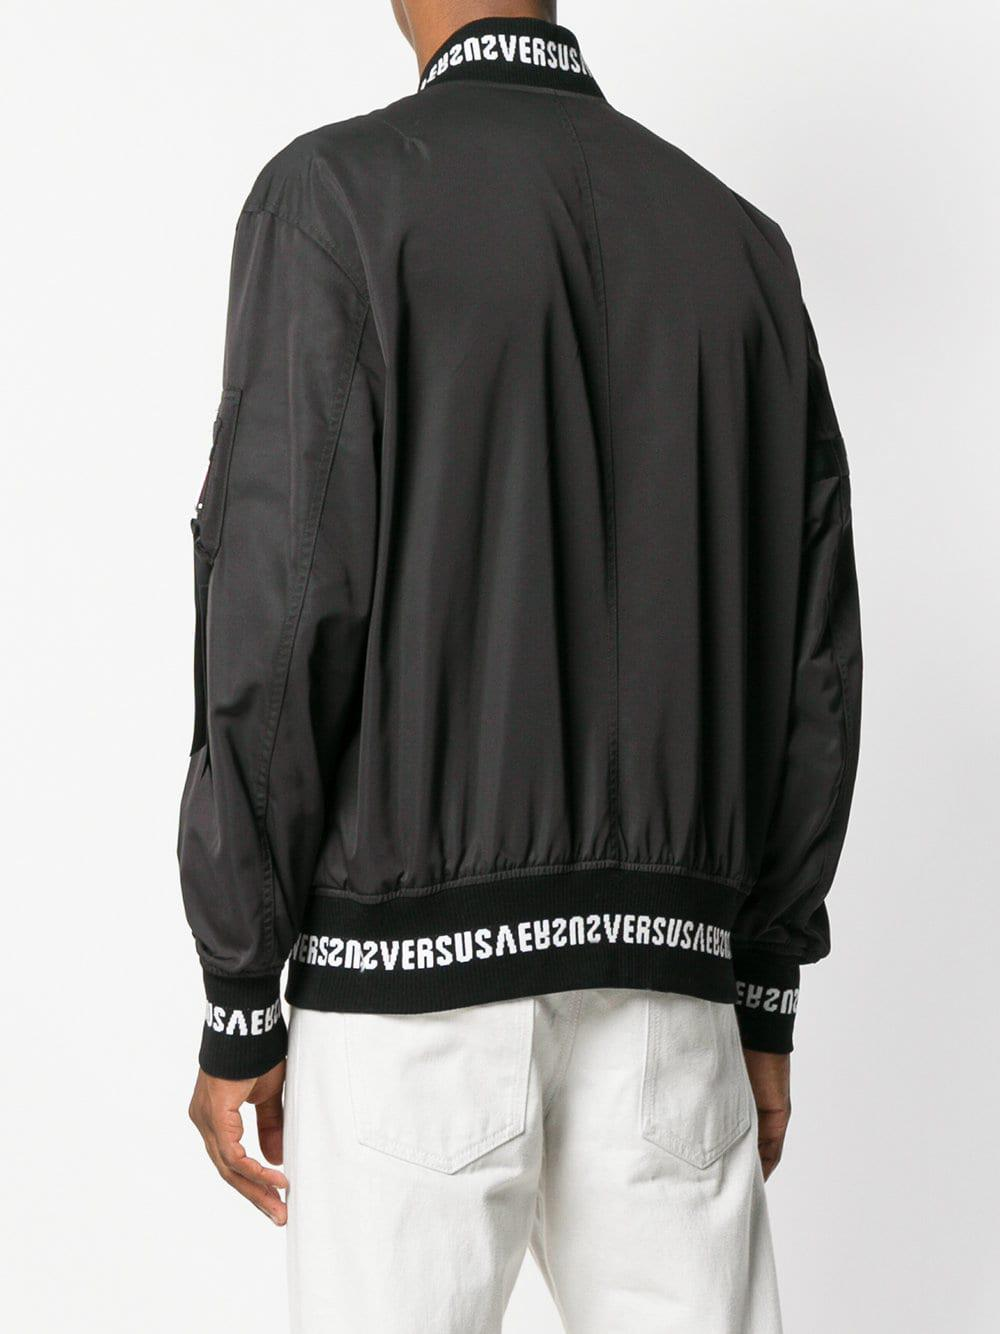 Logo For Versus Fullscreen Men View Lyst Bomber Black Print Jacket gOPqfw